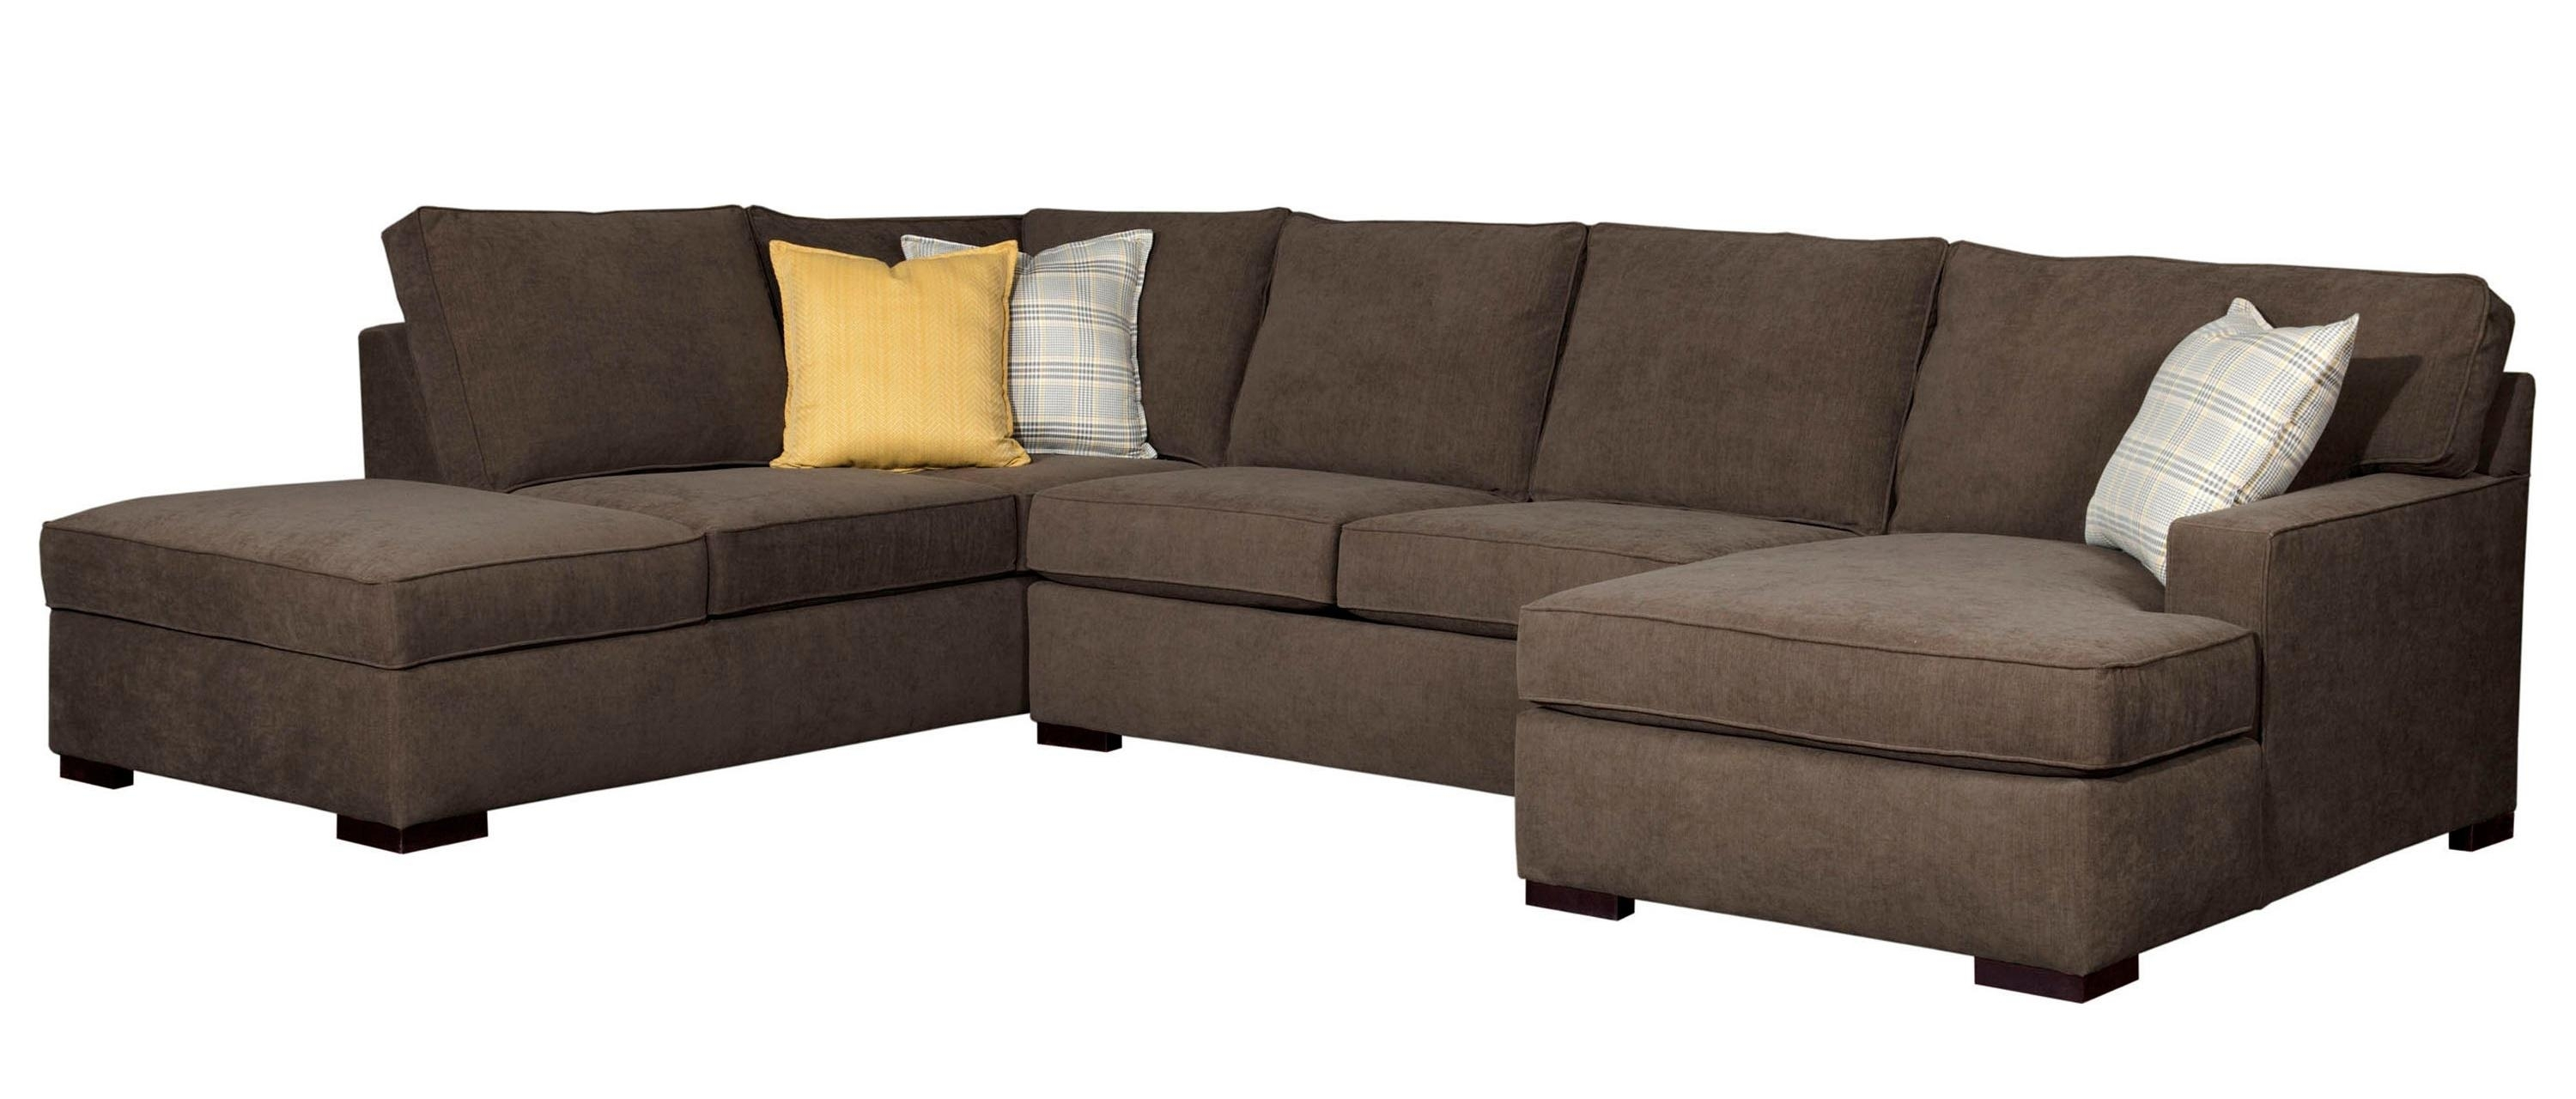 Broyhill Furniture Raphael Contemporary Sectional Sofa With Raf with regard to Norfolk Chocolate 3 Piece Sectionals With Laf Chaise (Image 7 of 30)